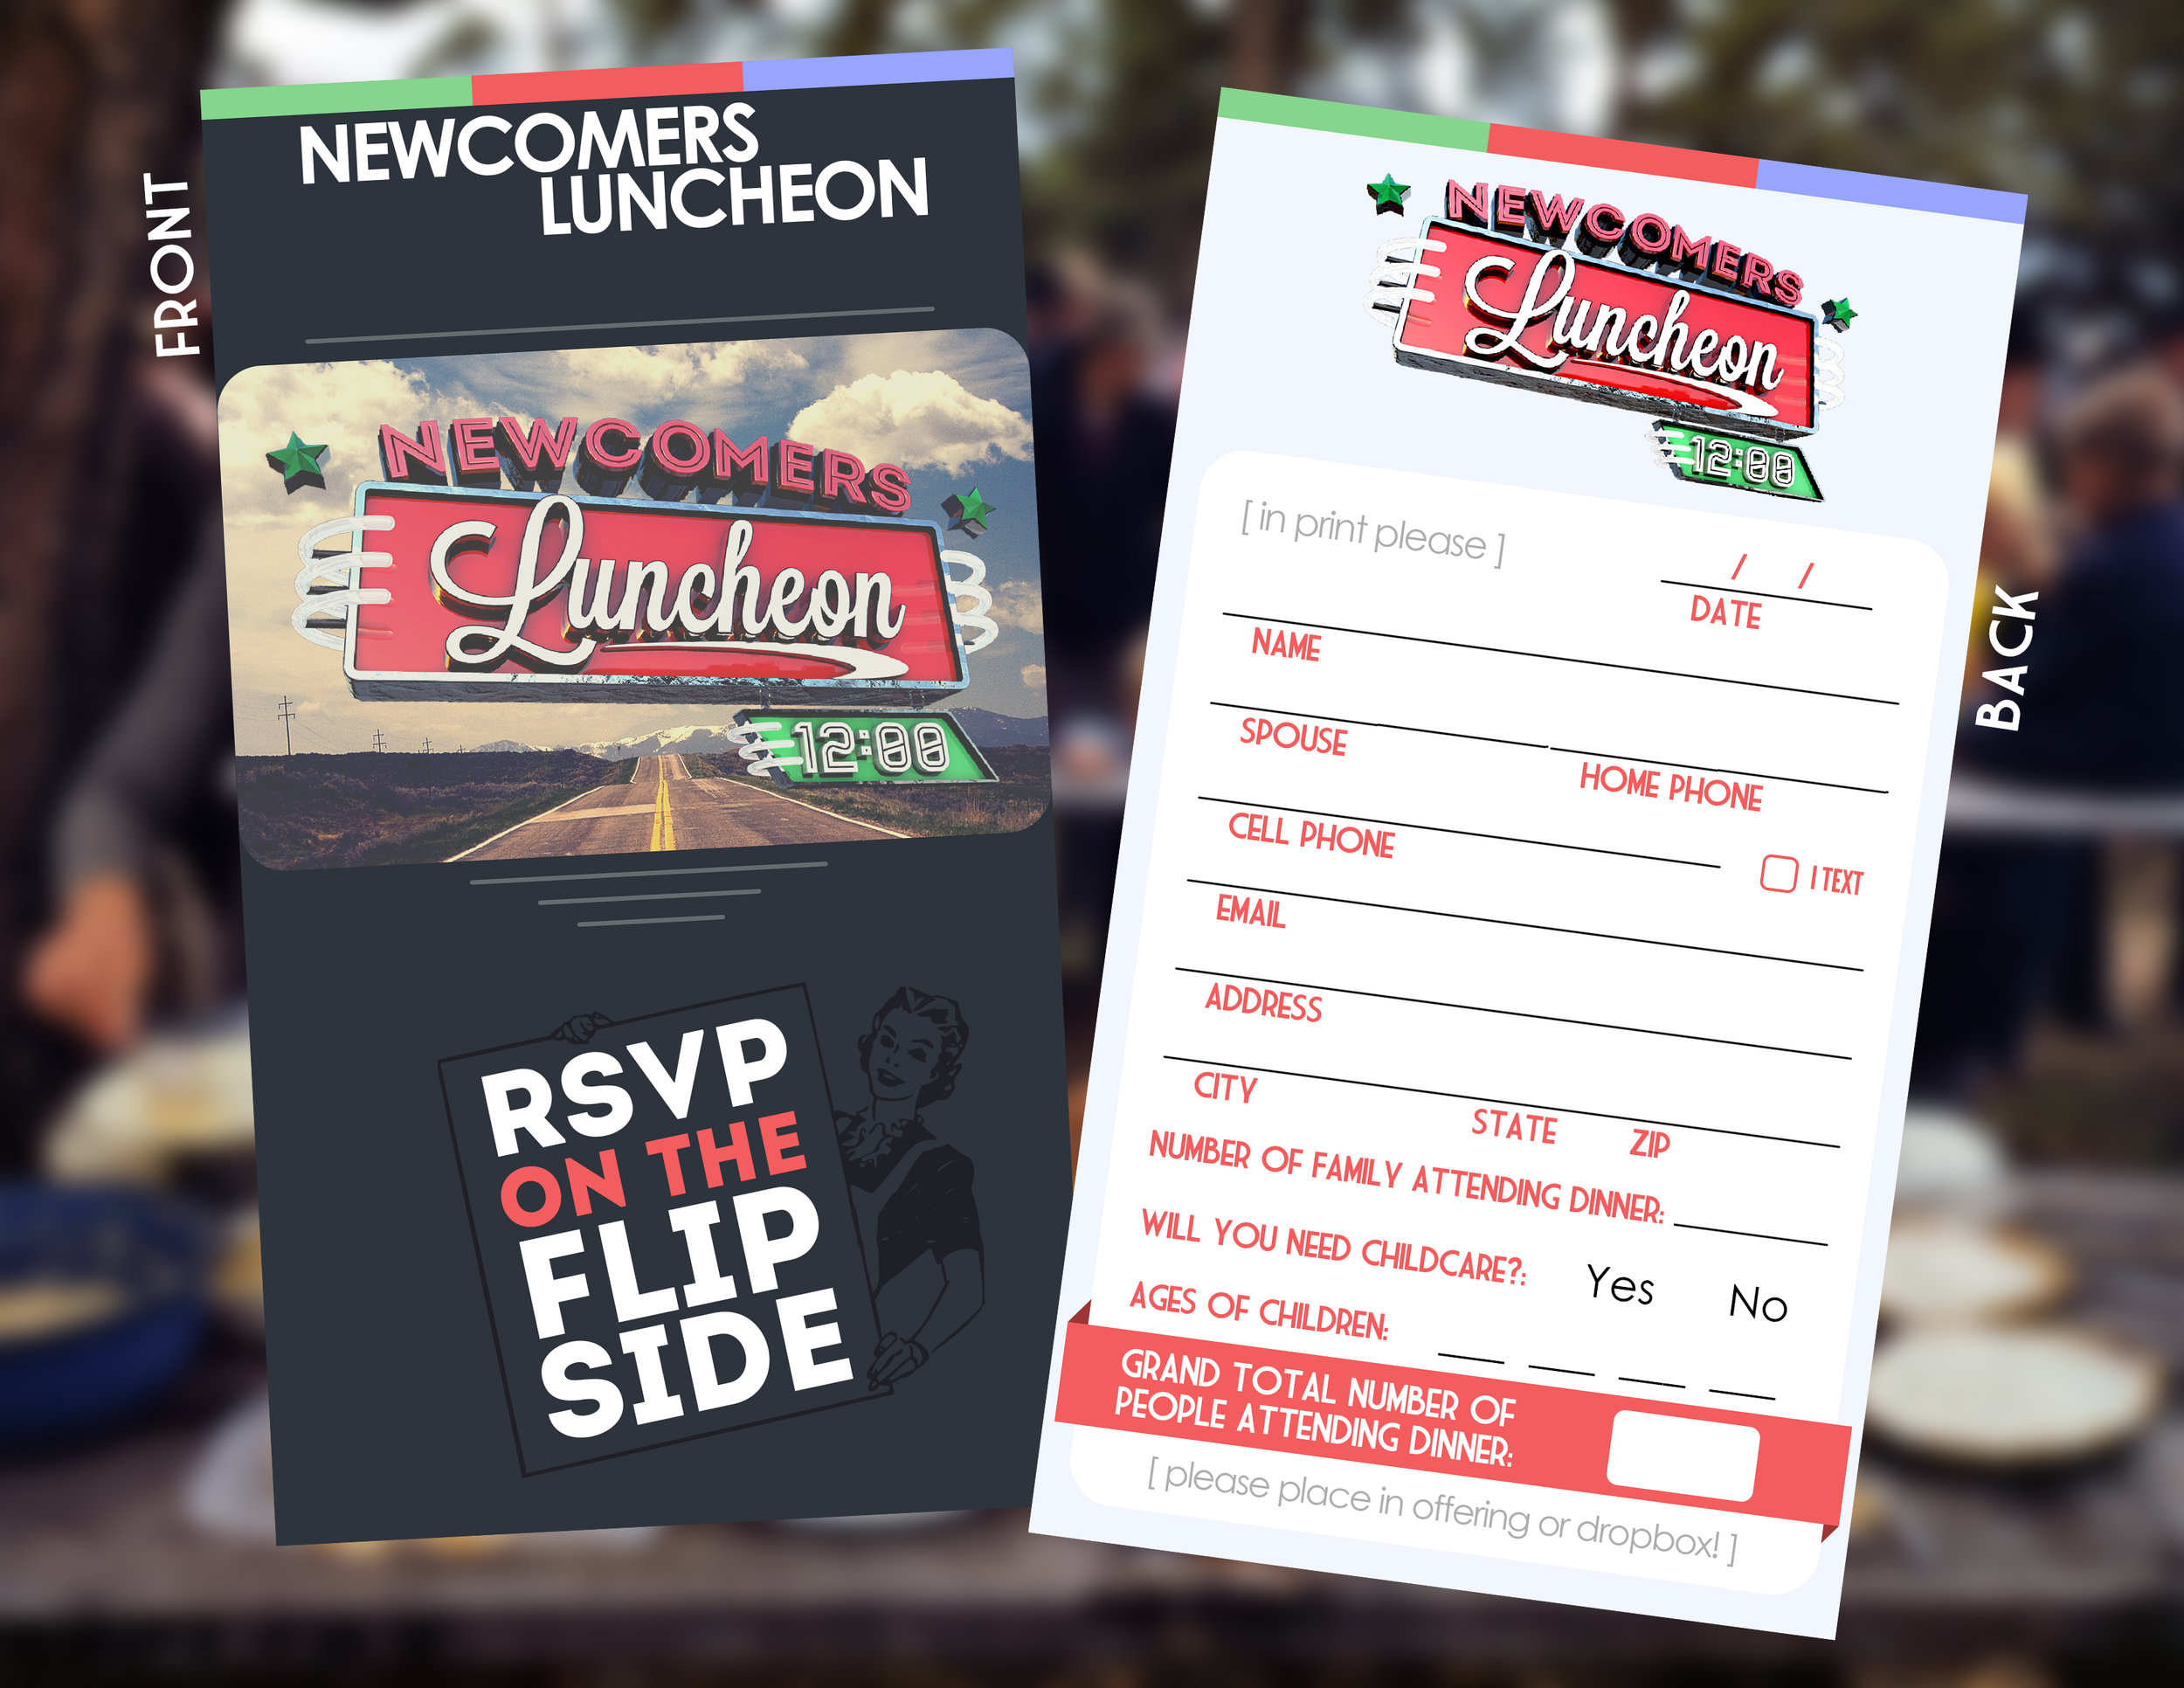 Newcomers Luncheon Card demo.jpg